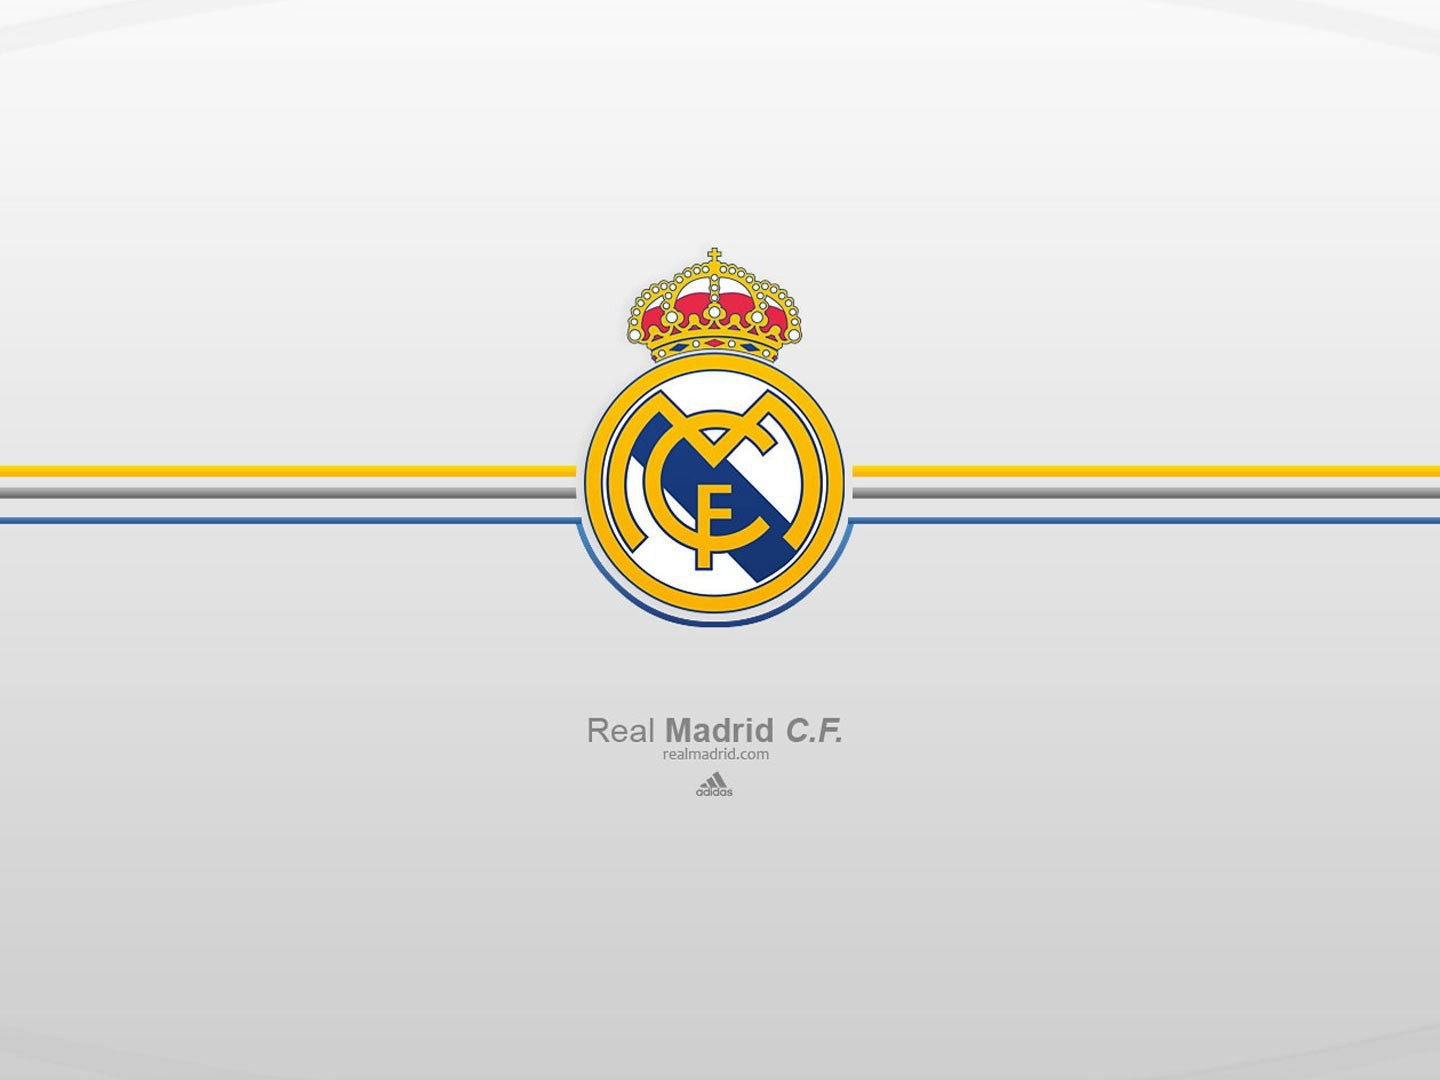 1440x1080 - Real Madrid C.F. Wallpapers 21